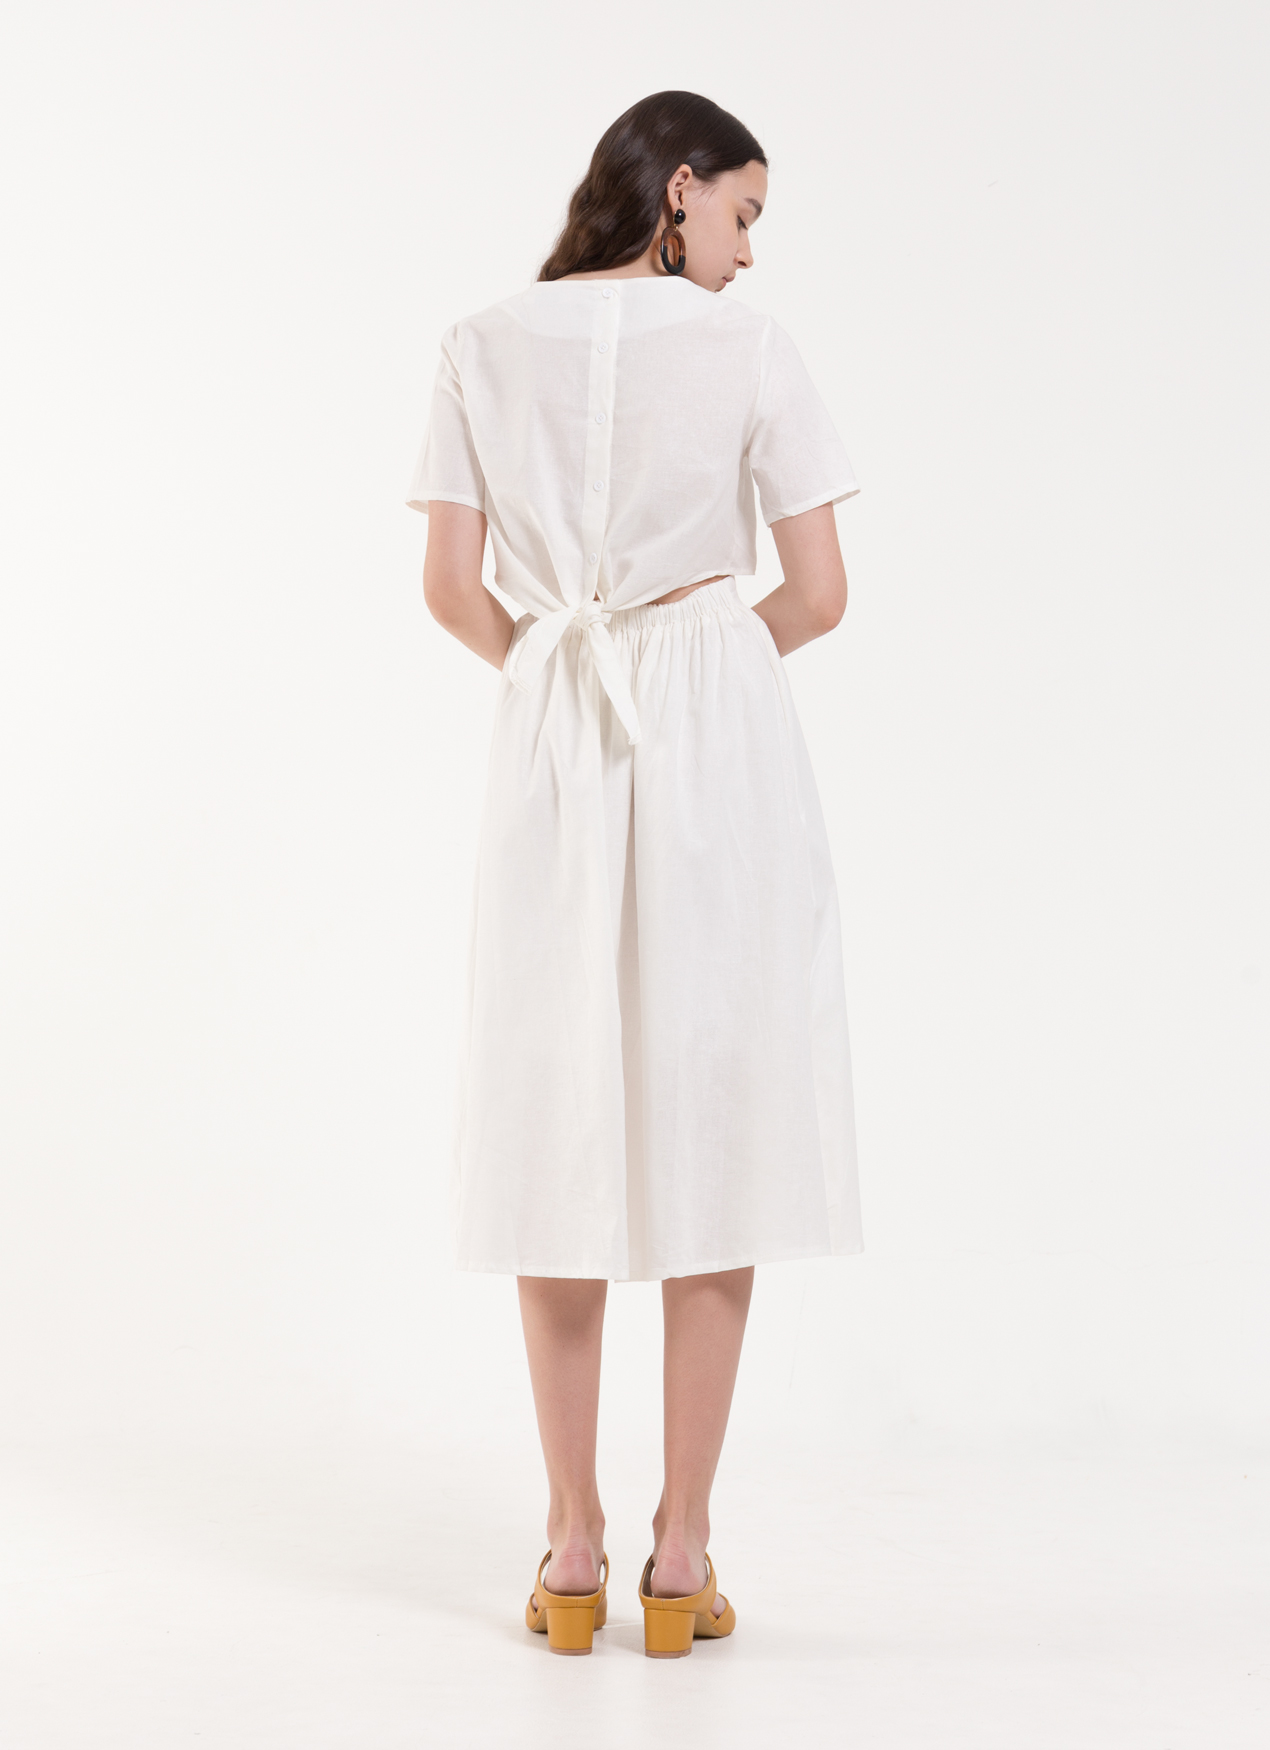 BOWN Lexi Dress - White